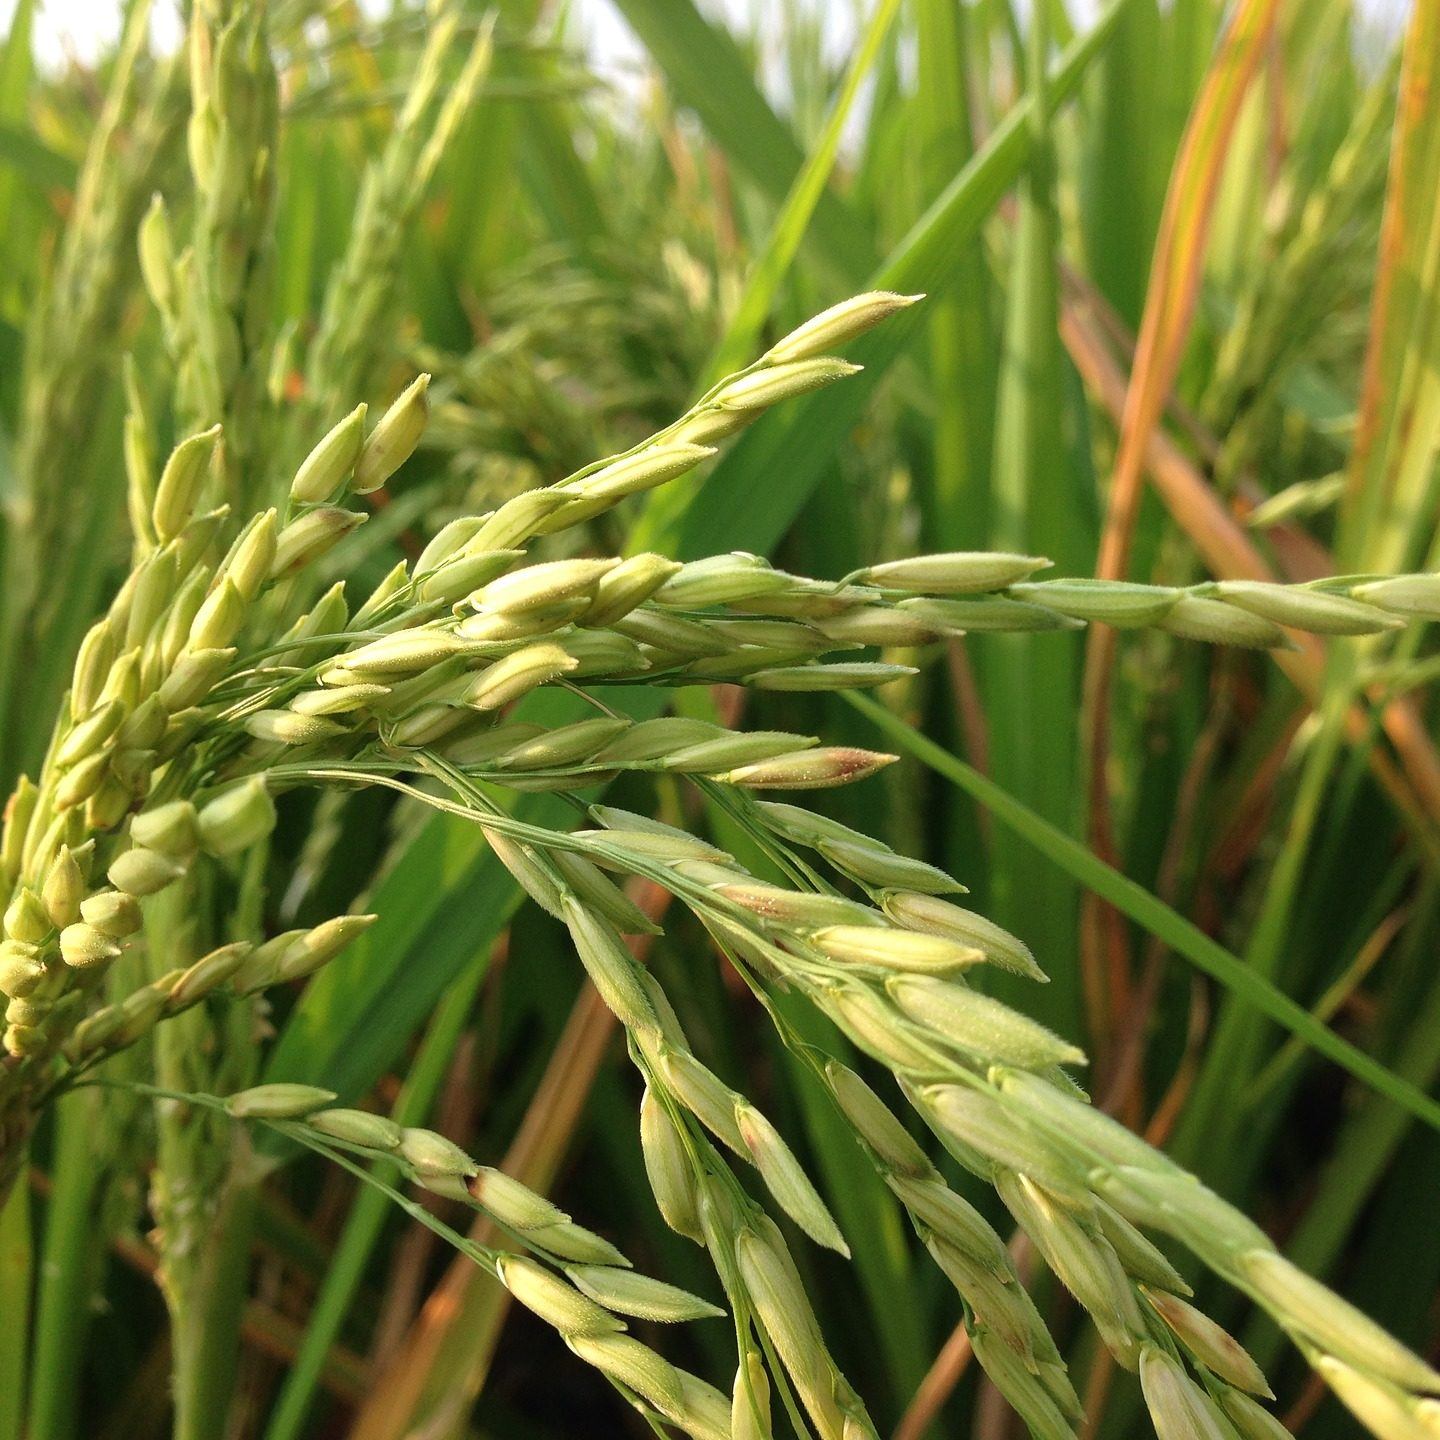 A knockout mutation of SaF /SaM in rice overcomes male sterility in hybrids between indica and japonica